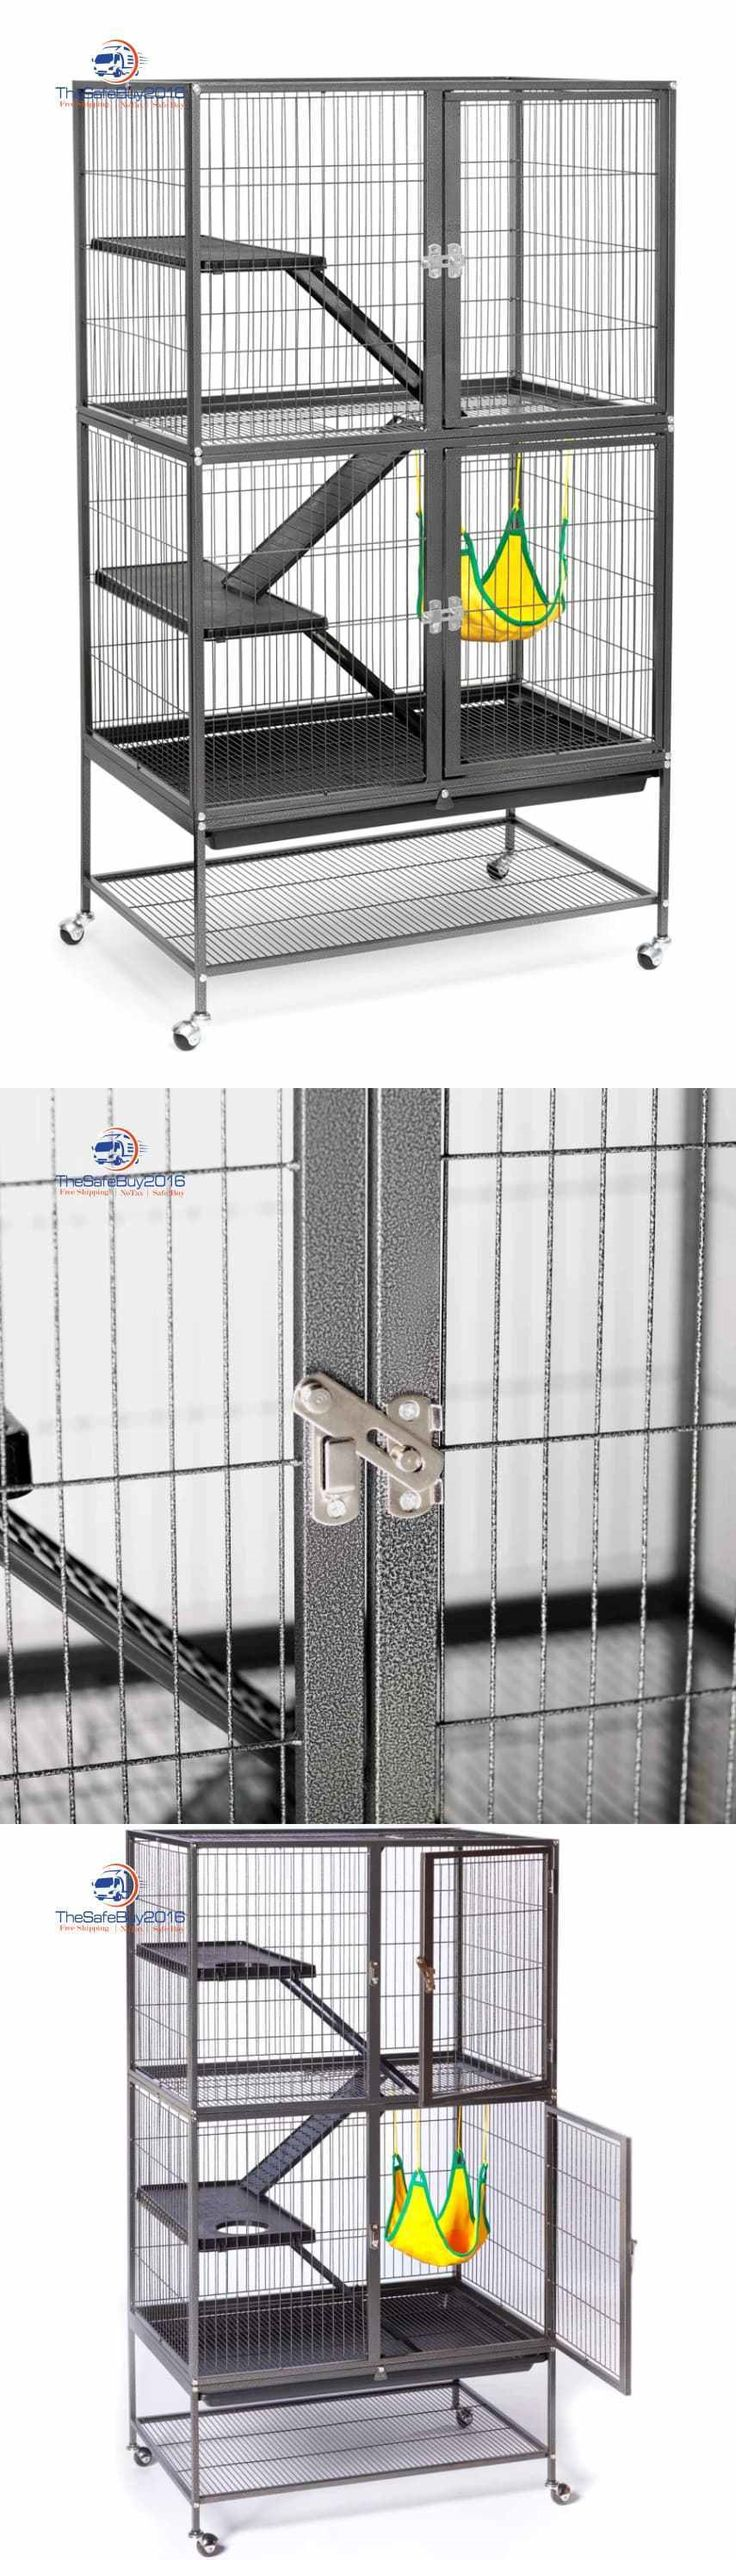 Cages and Enclosure 63108: Large Ferret Cage Small Pet Chinchilla Rabbit Hamster Guinea Rat Metal House BUY IT NOW ONLY: $159.99